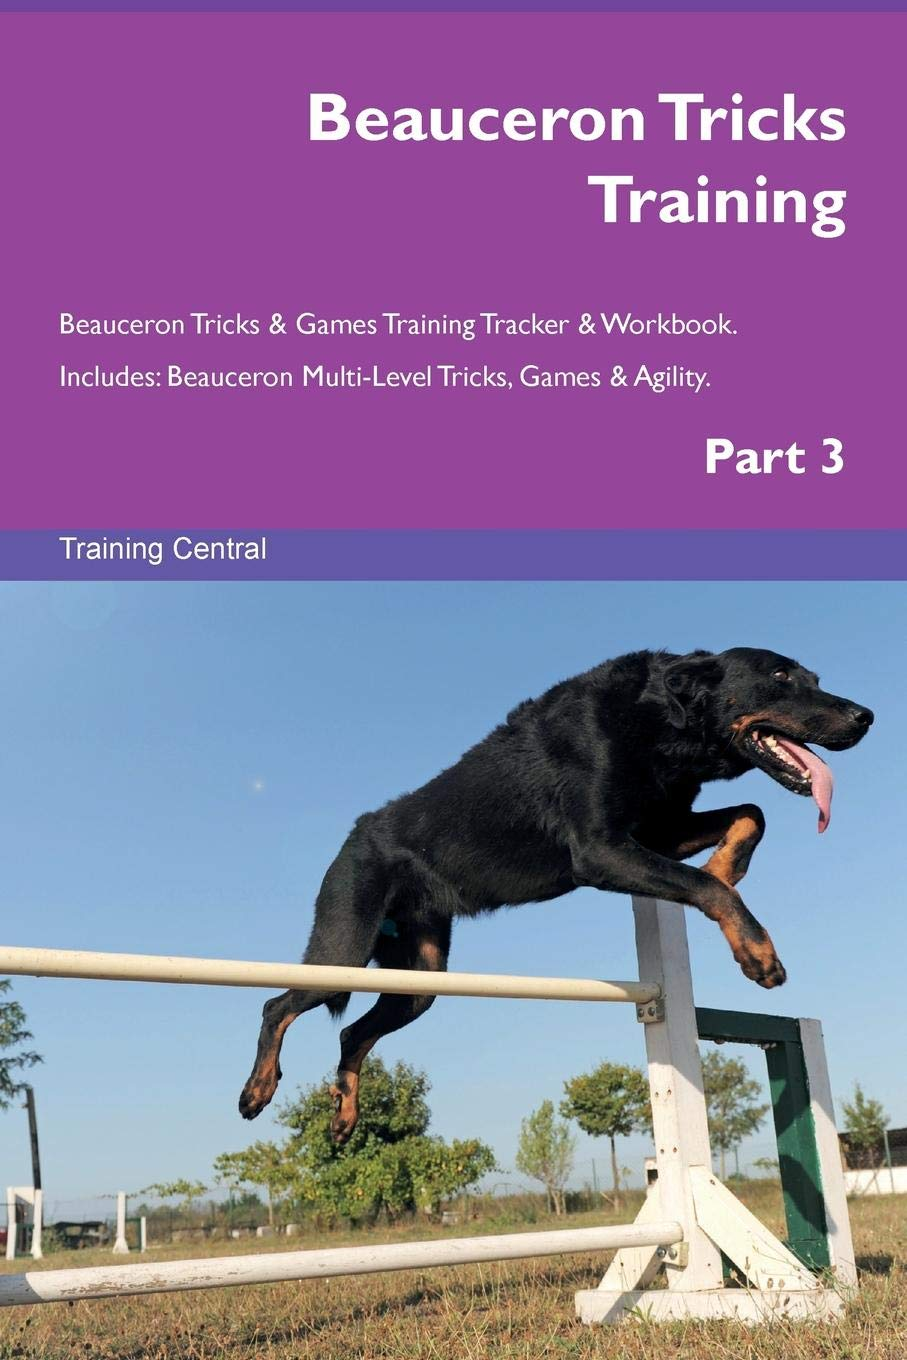 Beauceron Tricks Training Beauceron Tricks & Games Training Tracker & Workbook.  Includes: Beauceron Multi-Level Tricks, Games & Agility. Part 3